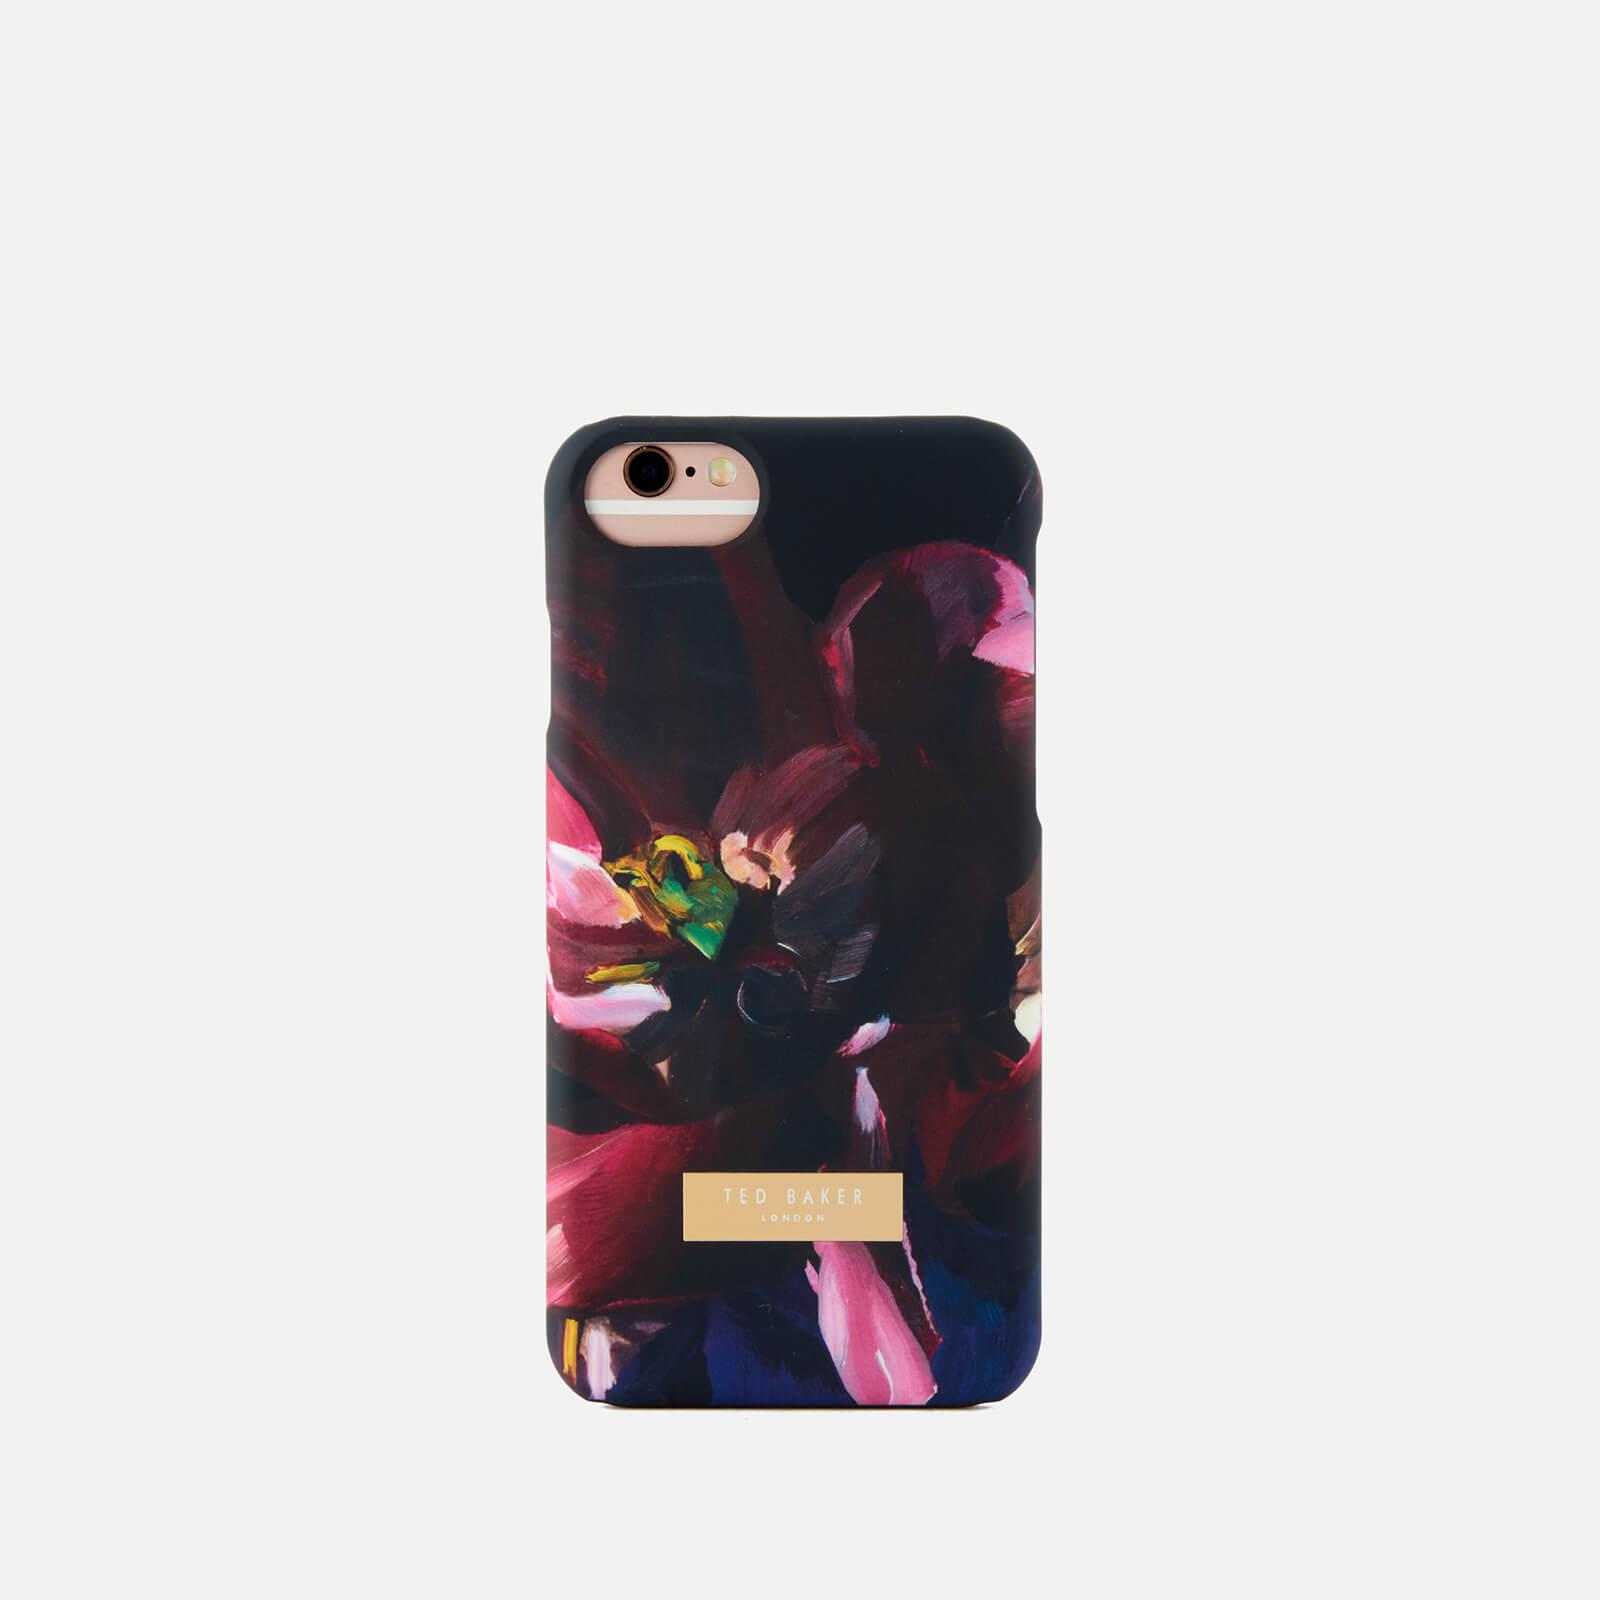 1cdd5065122e Lyst - Ted Baker Loliva Impressionist Bloom Iphone Clip Case